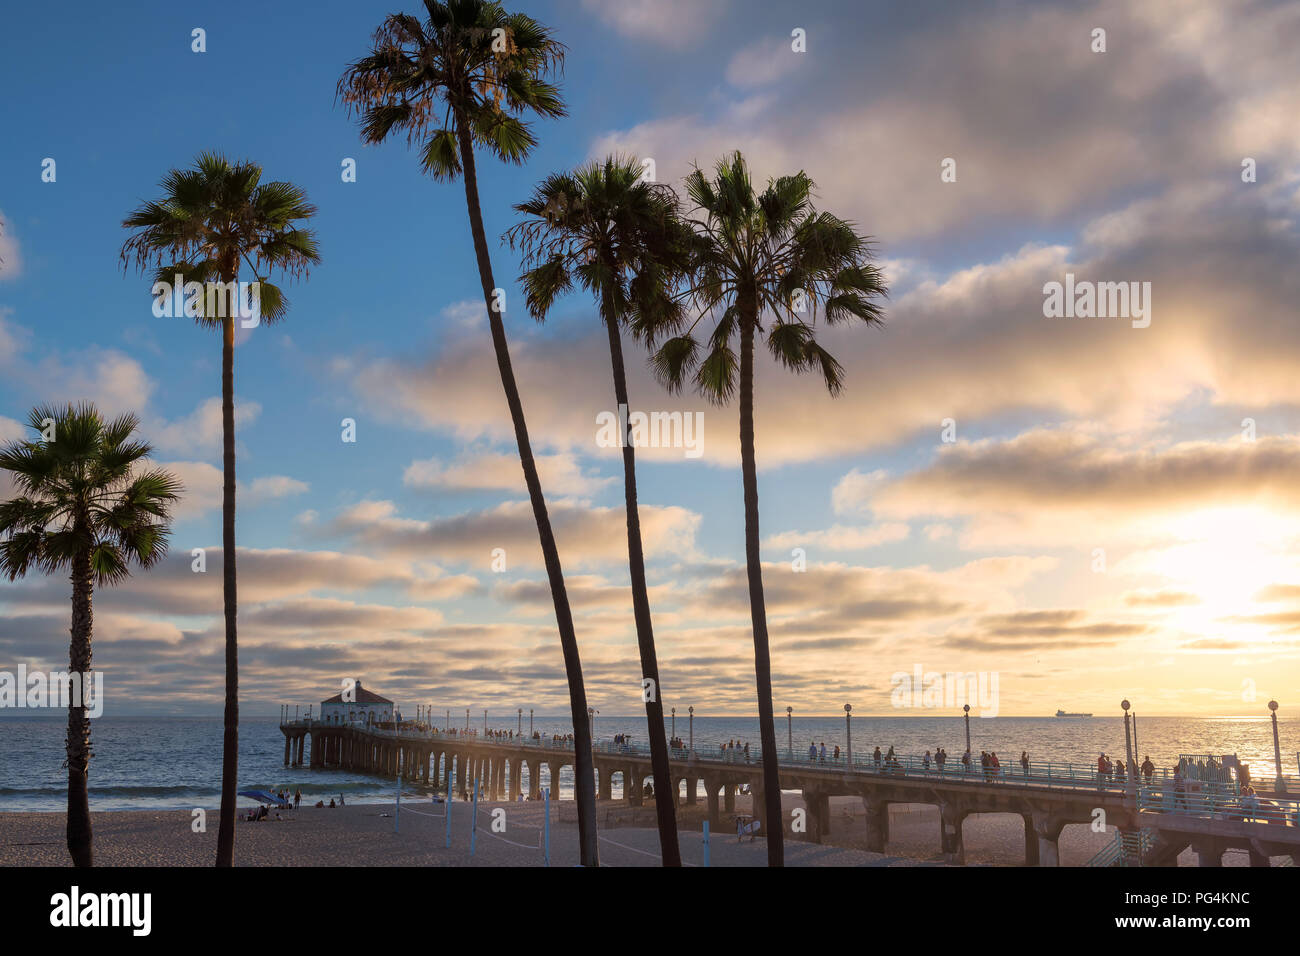 California beach at sunset, Los Angeles, California. - Stock Image